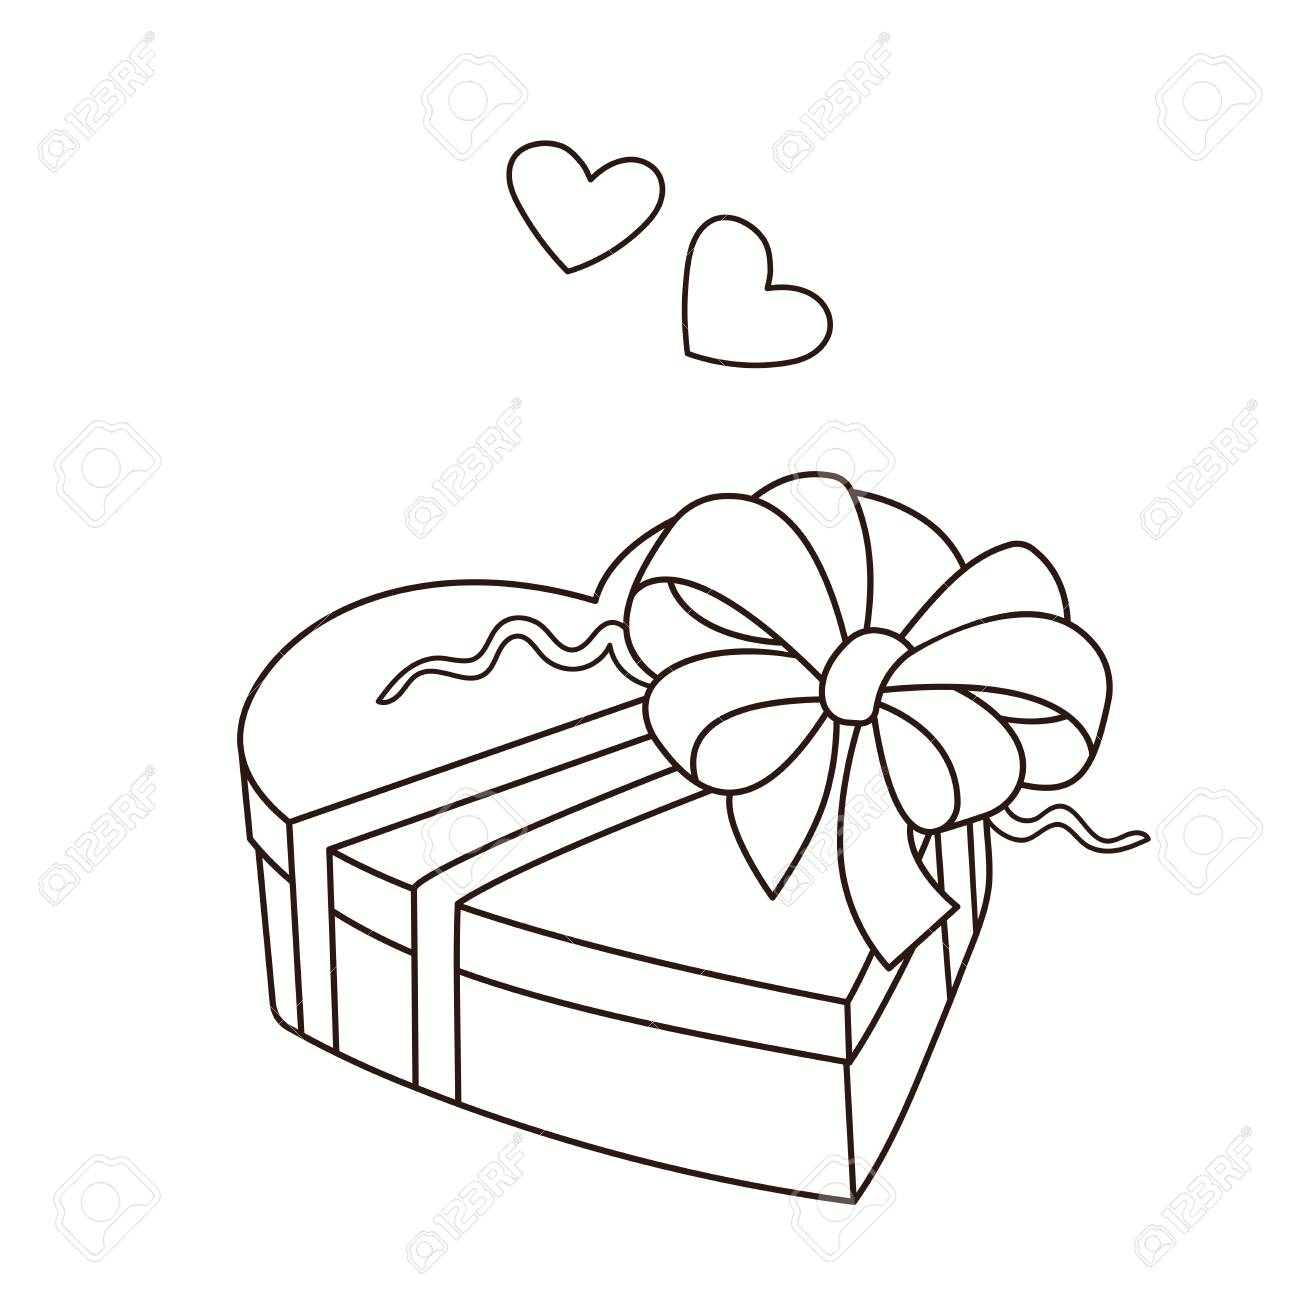 coloring page outline of gift birthday valentine s day coloring